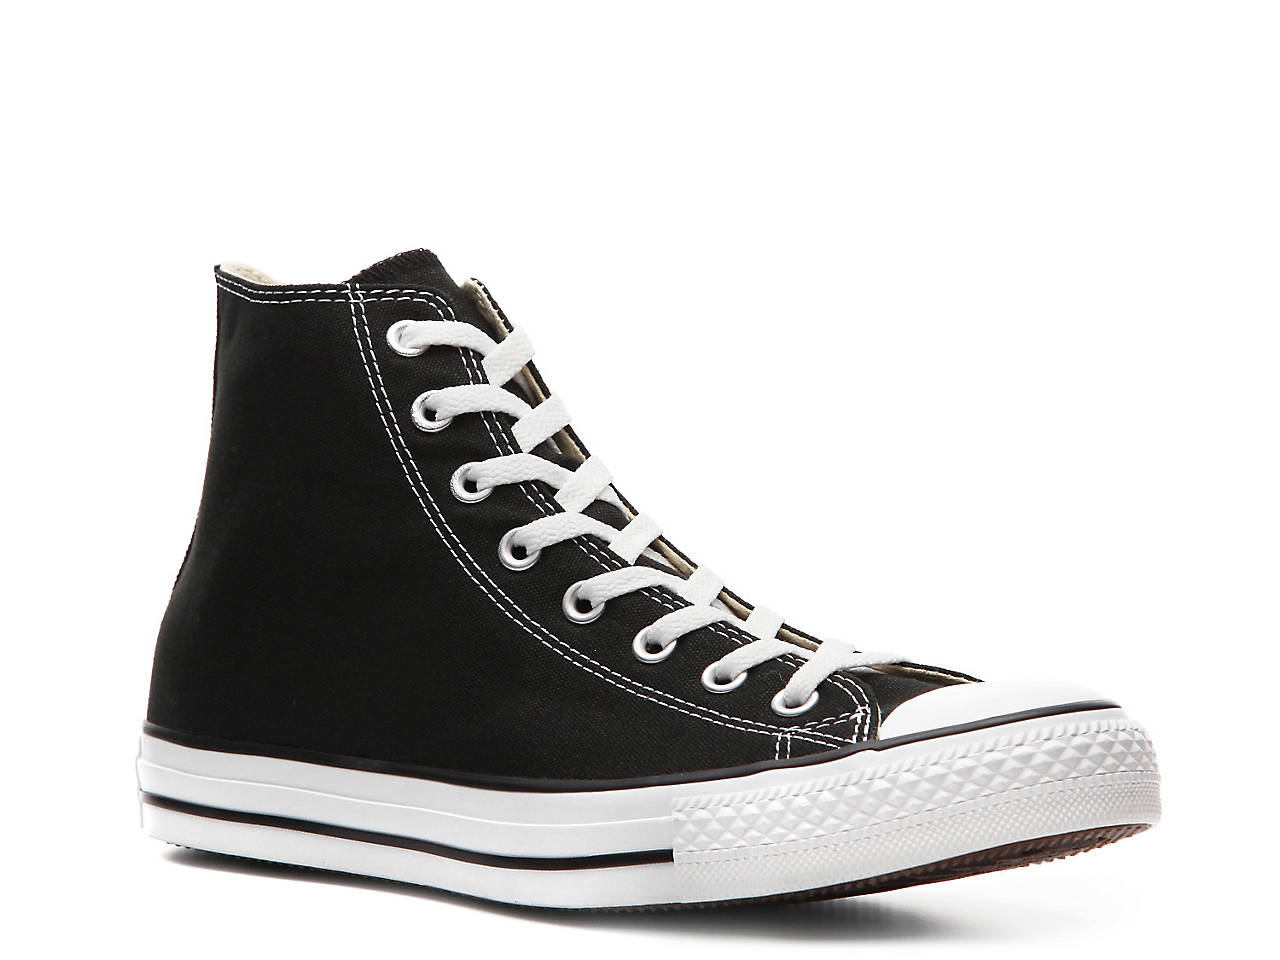 cdf46aaf066073 Converse Chuck Taylor All Star High-Top Sneaker - Men s Men s Shoes ...